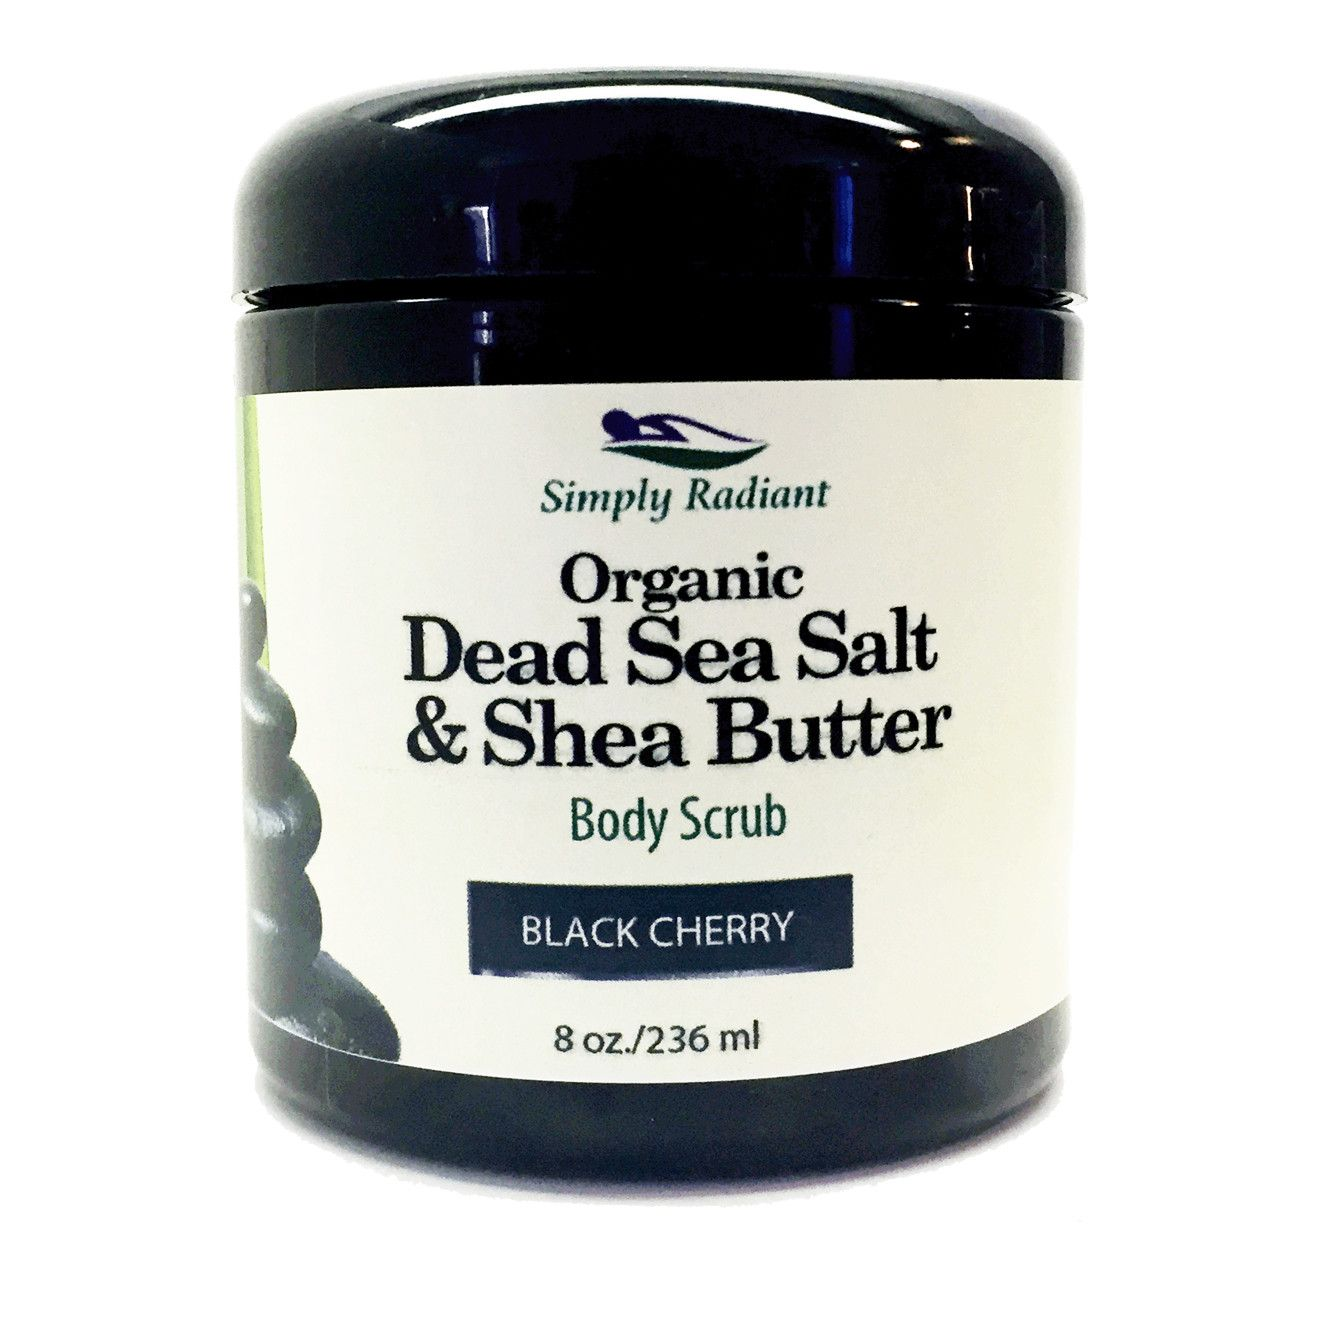 This Dead Sea Salt and Shea Butter Body scrub will leave your skin feeling rejuvenated, hydrated and renewed! Created with only the best ingredients, this is a homemade body scrub is even perfect for everyday use. The ultra rich exfoliating formula will give you smooth, healthy and glowing skin. This body scrub protects your skin by nourishing it with critical vitamins, minerals and antioxidants. It deeply hydrates your skin without leaving it greasy or oily. The body scrub is a must have…